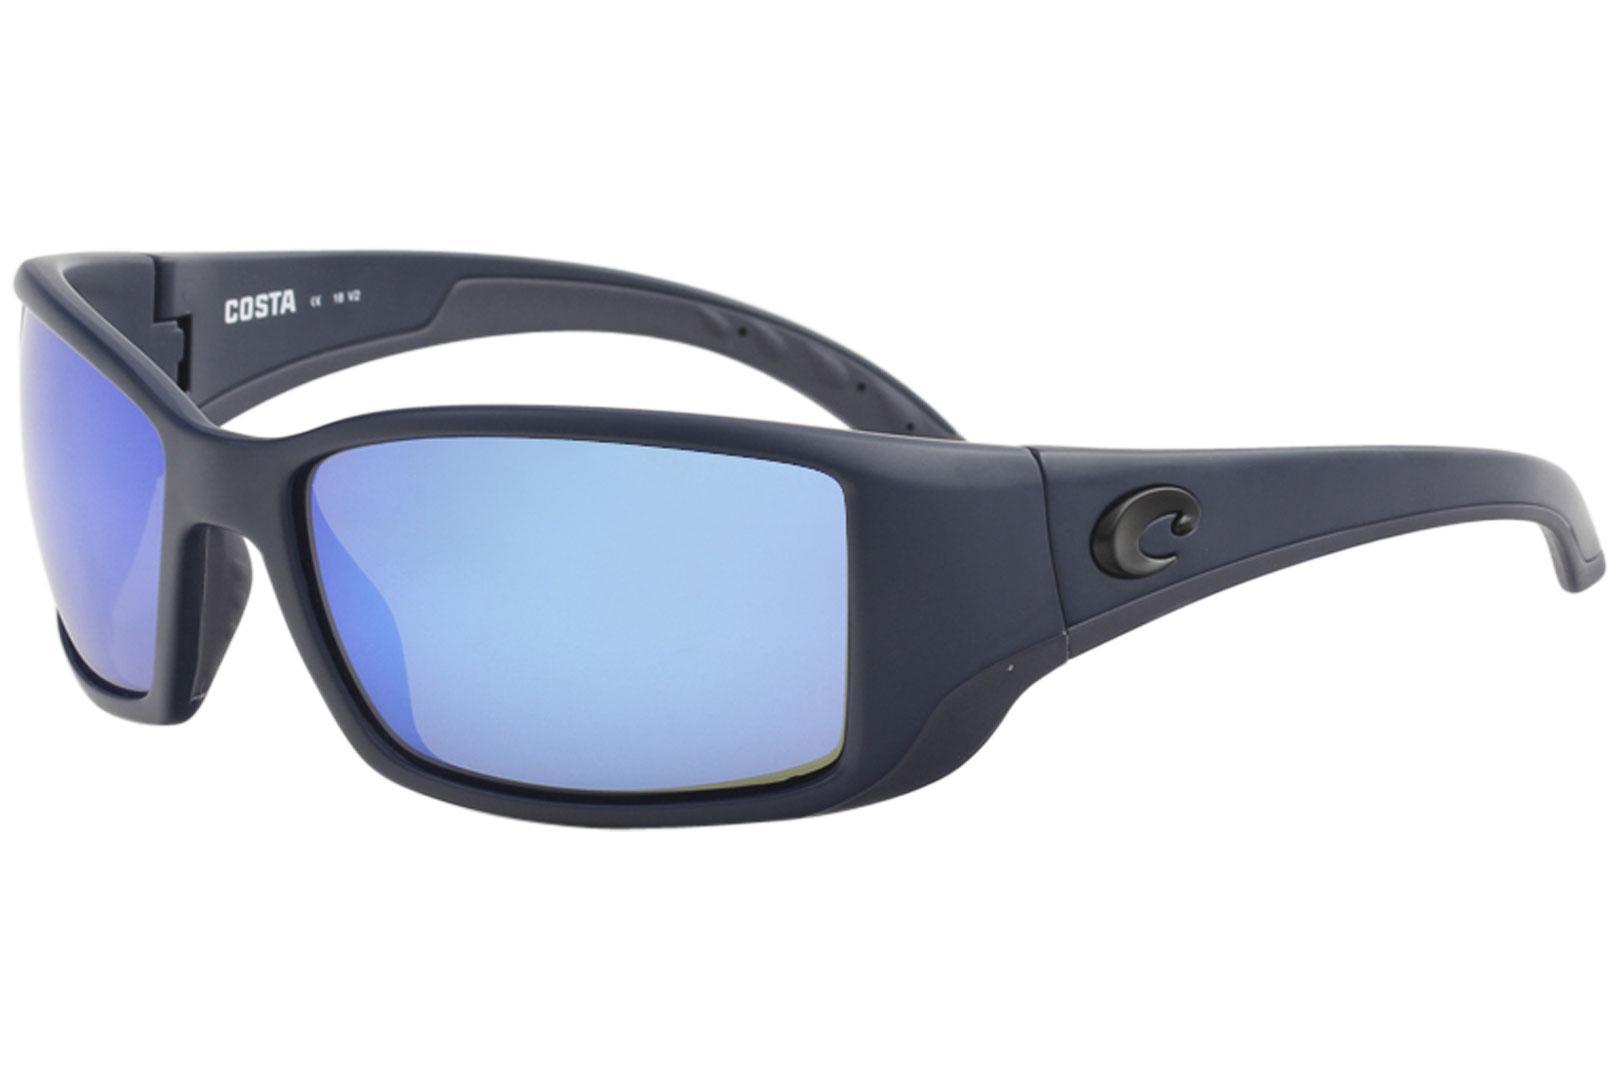 f6c21464c8abf Costa Del Mar Blackfin BL14 OBMGLP Midnight Blue Wrap Polarized ...